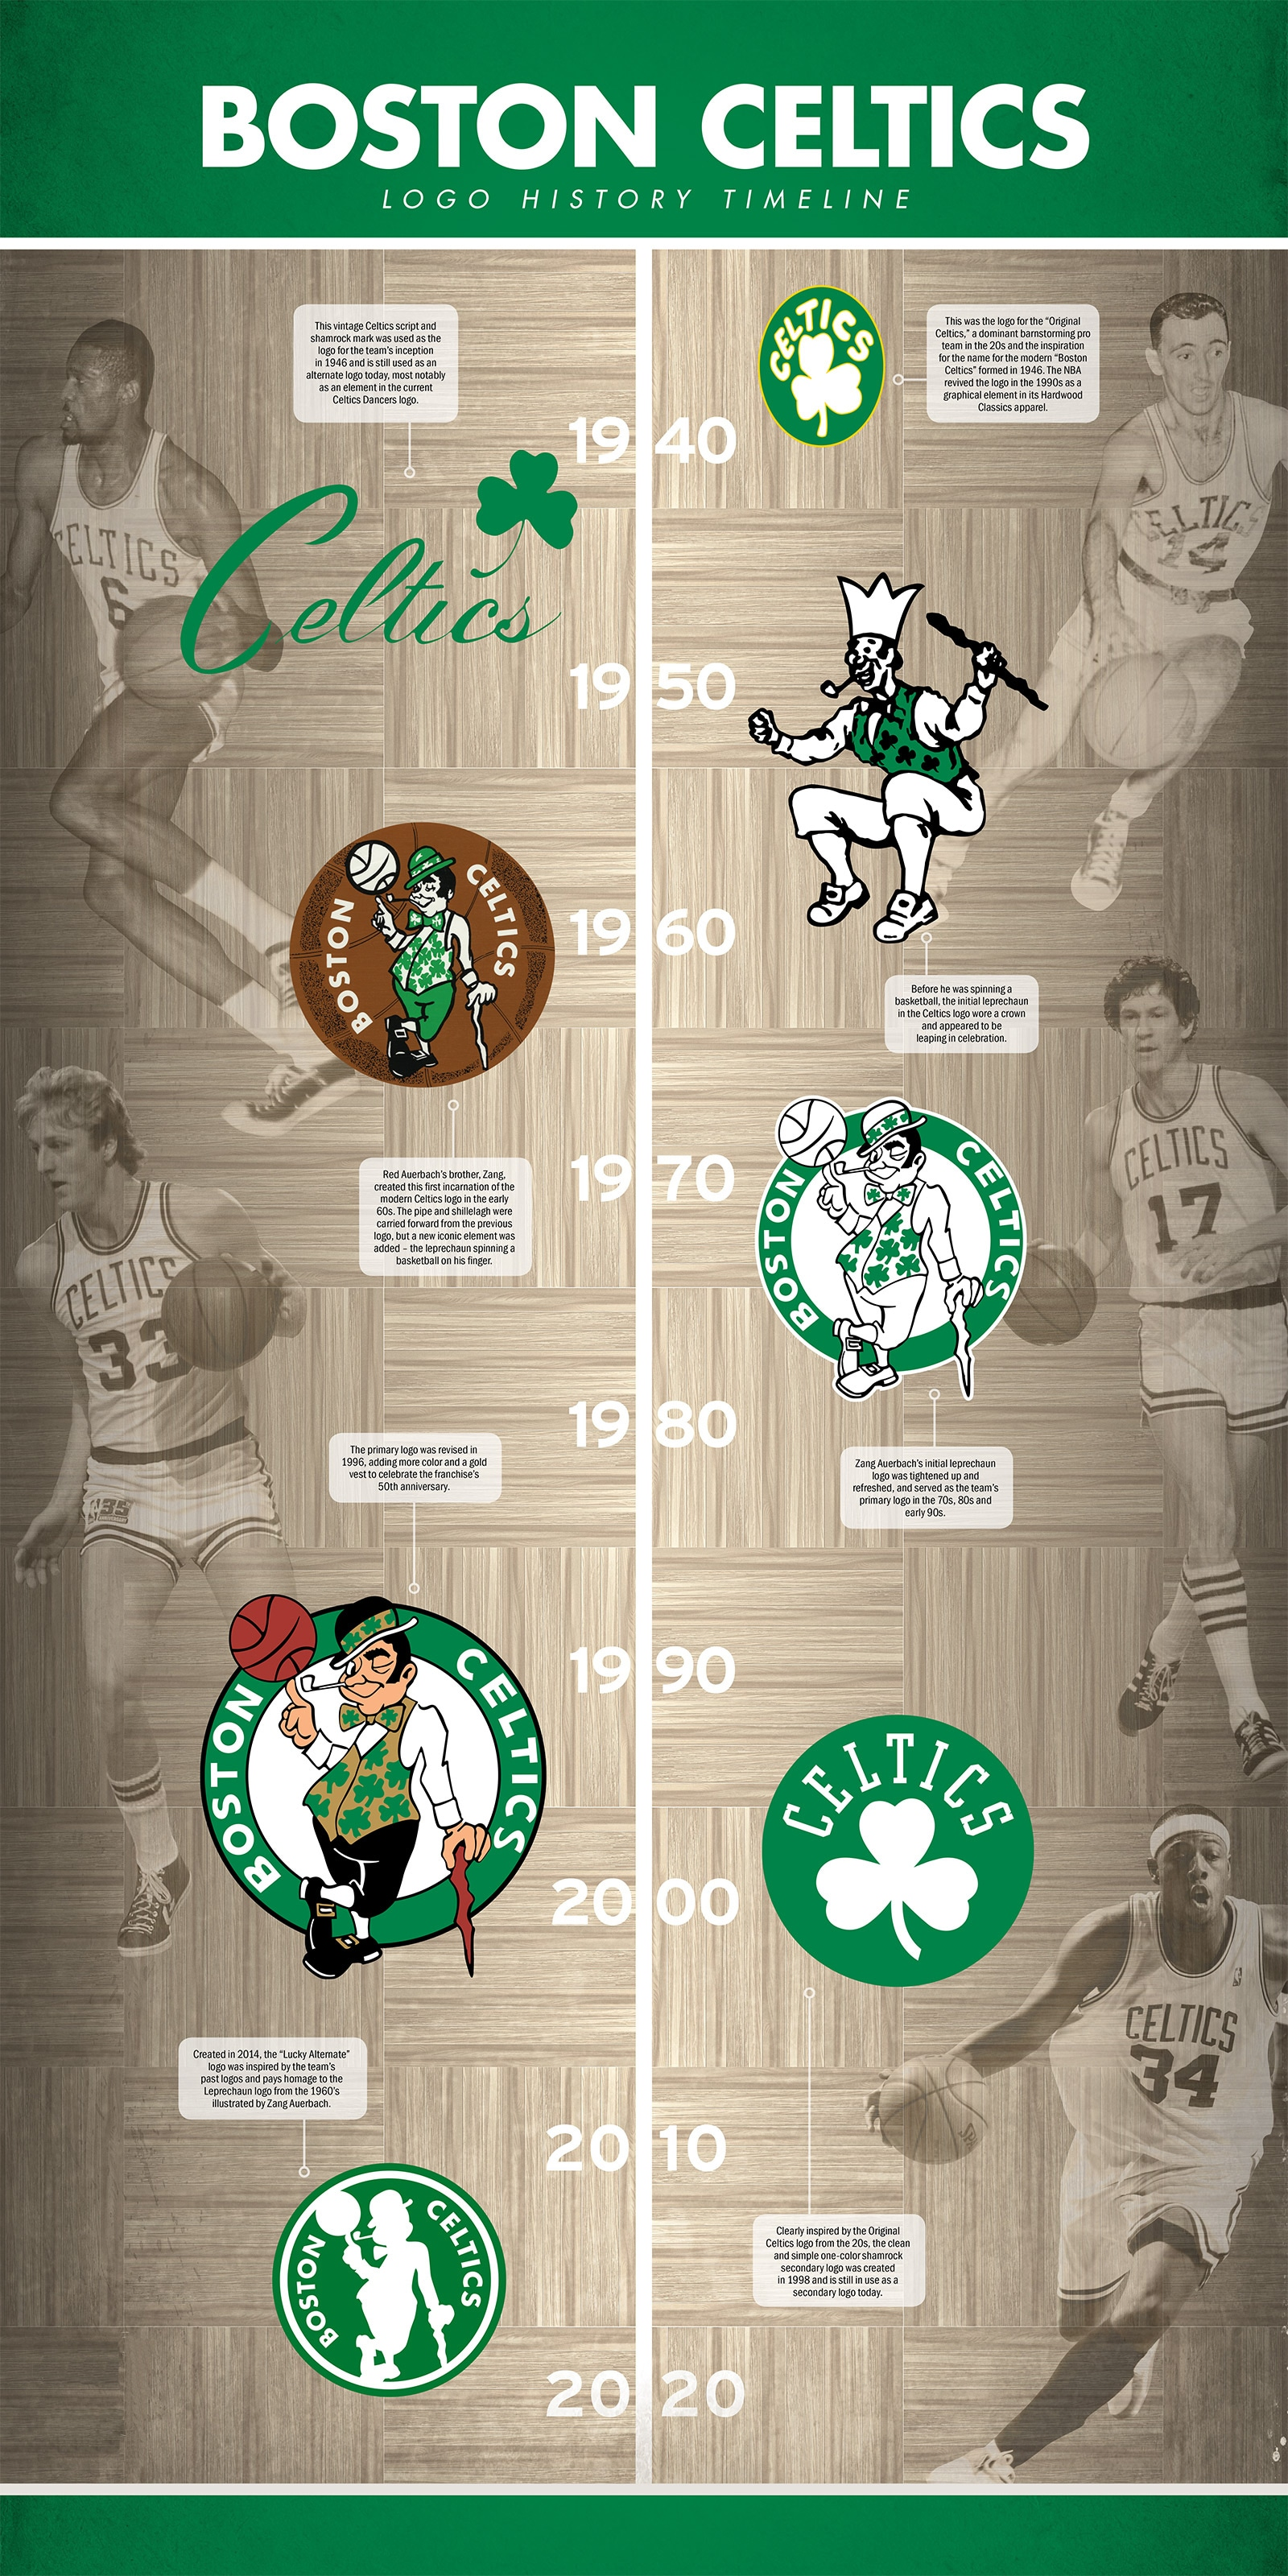 Boston Celtics Record 2017 >> Boston Celtics Players History Pictures to Pin on Pinterest - PinsDaddy